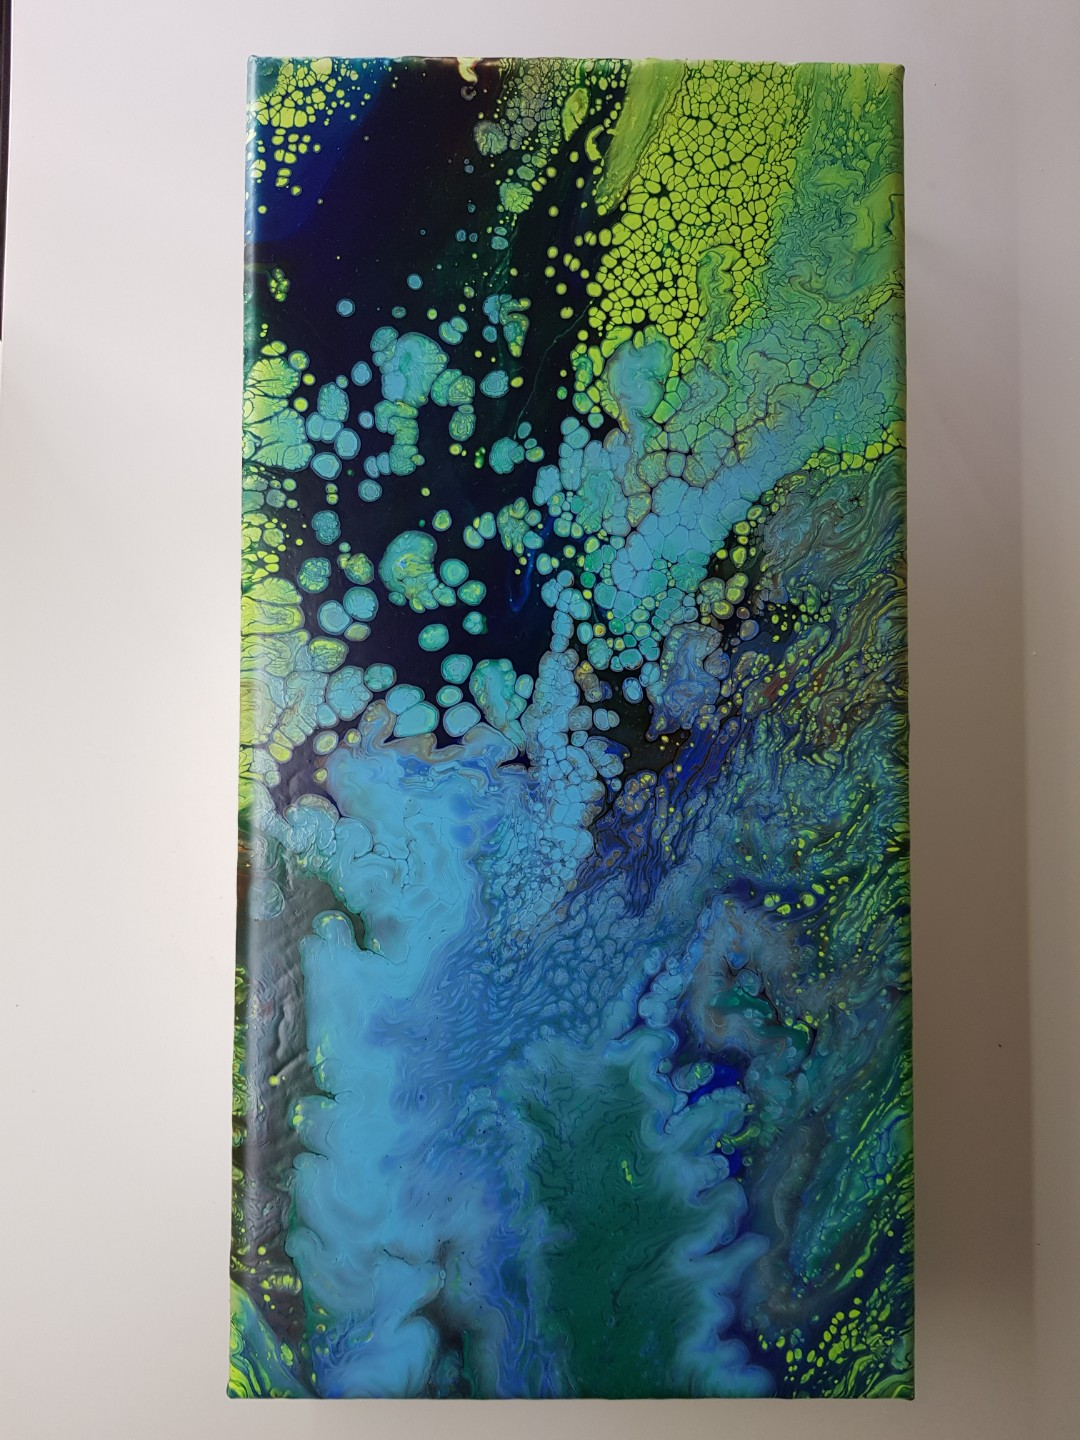 Acrylic Abstract 12 10x20 Inch Canvas Board Design Craft Art